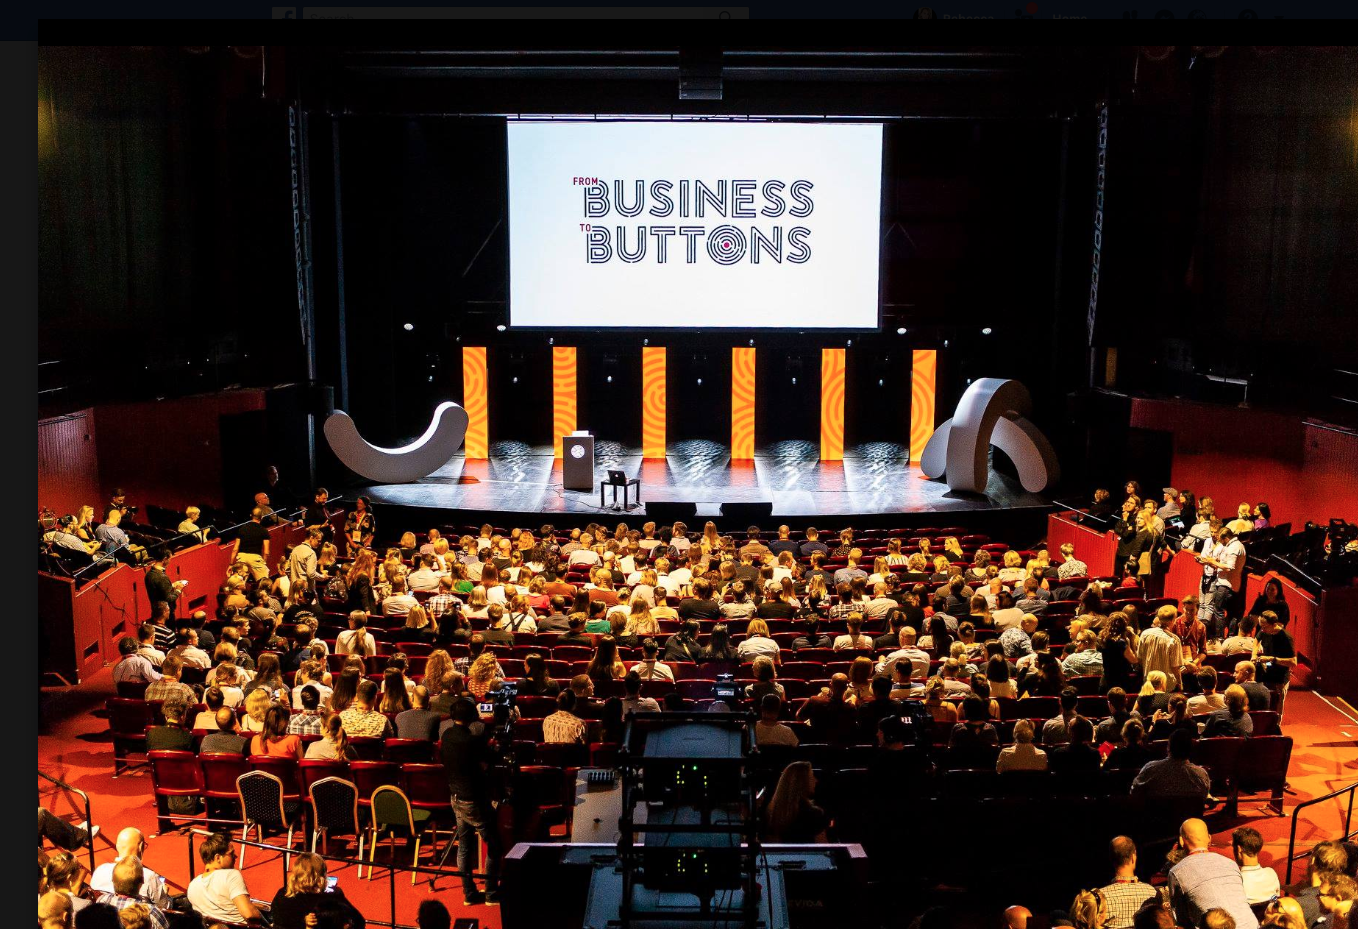 From Business to Buttons Conference - Stockholm May 2018